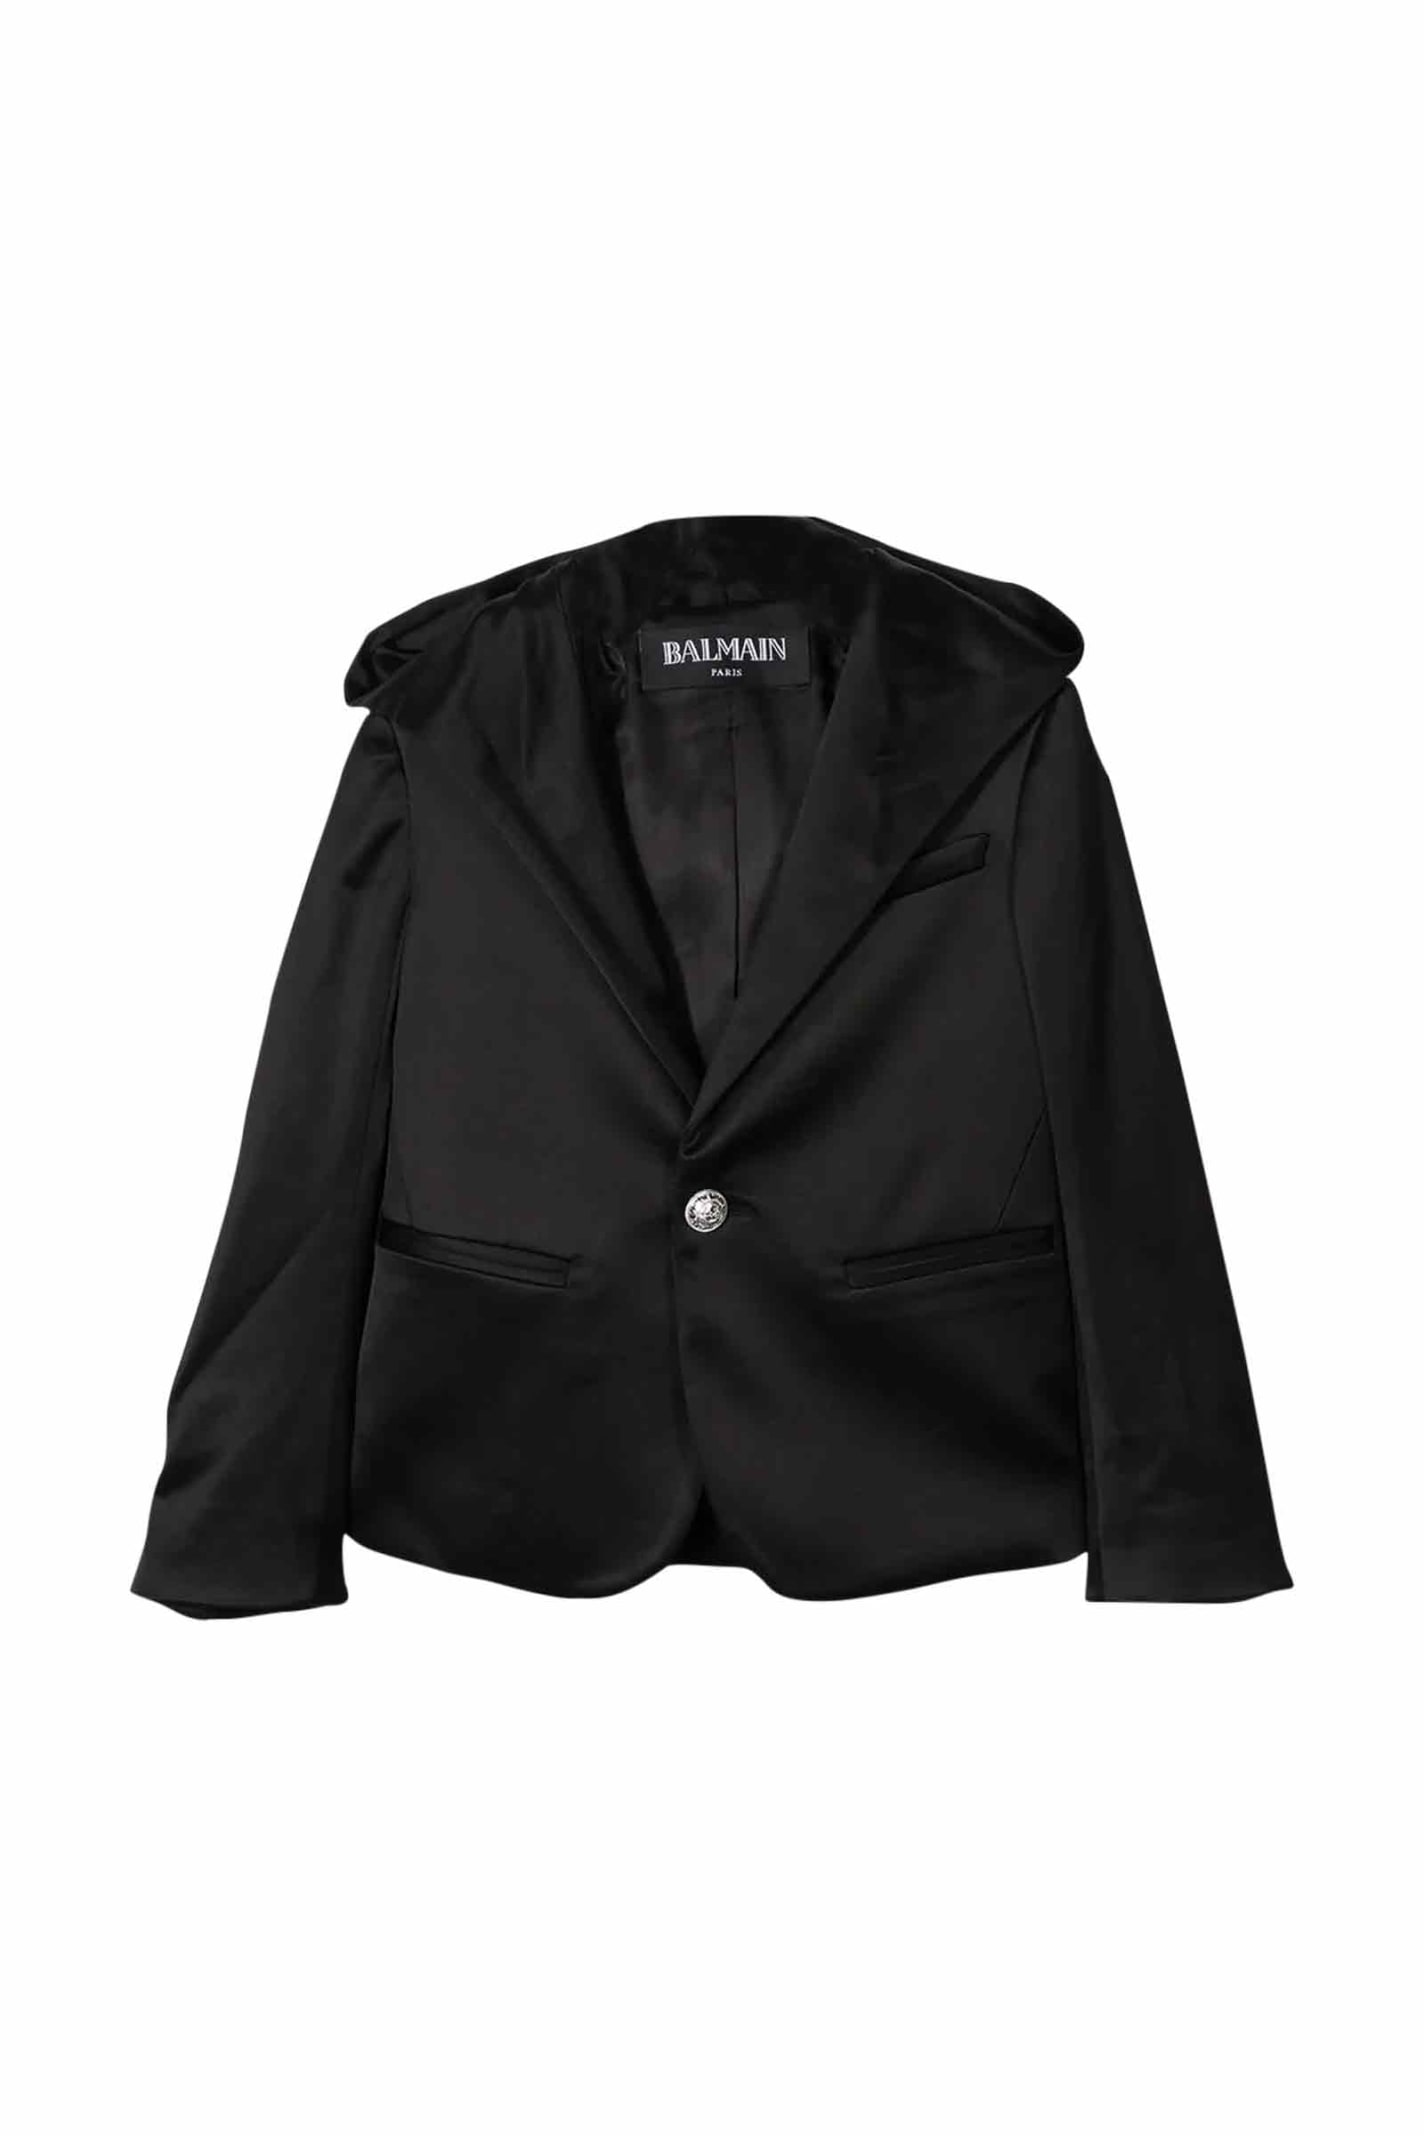 Balmain Kids' Single Button Blazer In Nero